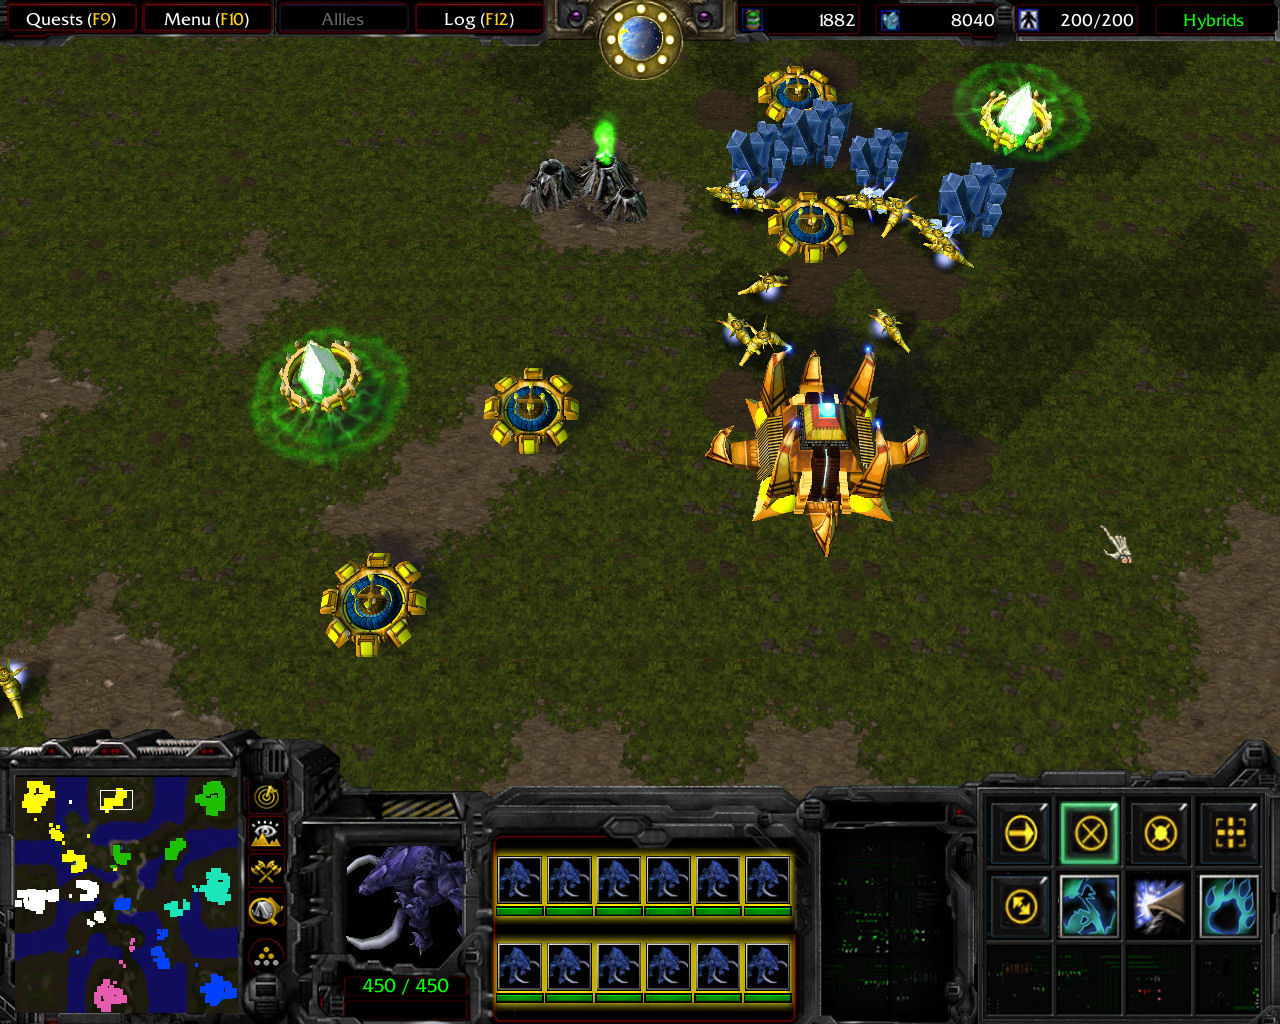 Download warcraft iii: the frozen throne direct from the windows store warcraft iii